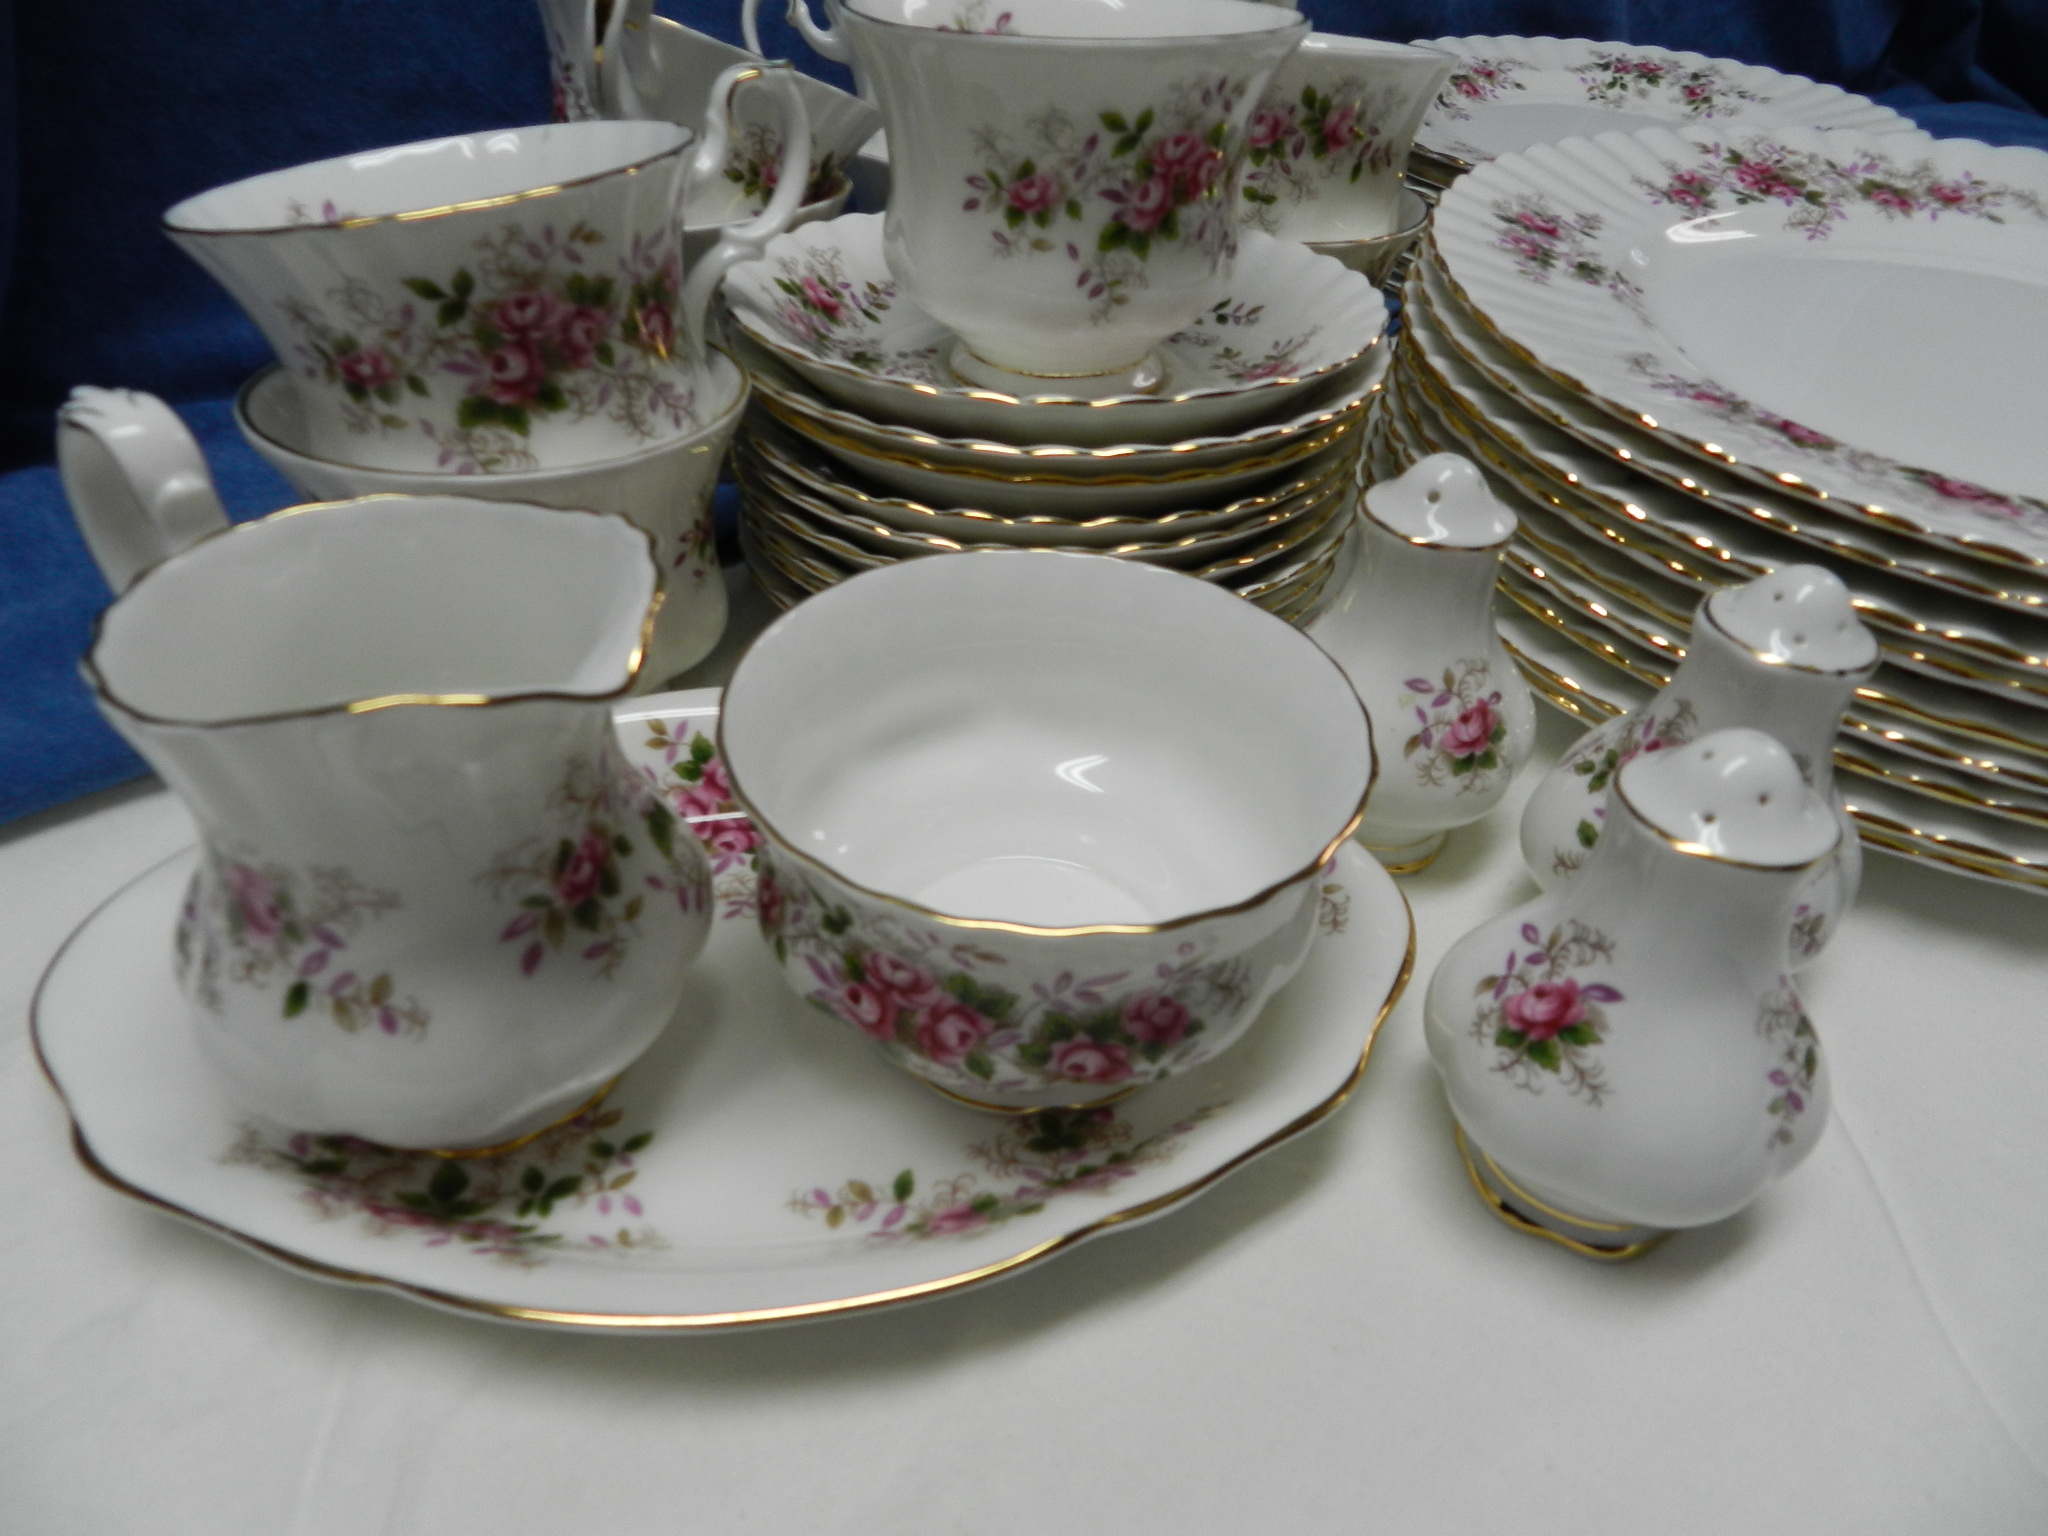 **SOLD** - Royal Albert English Fine Bone China - Lavender Rose